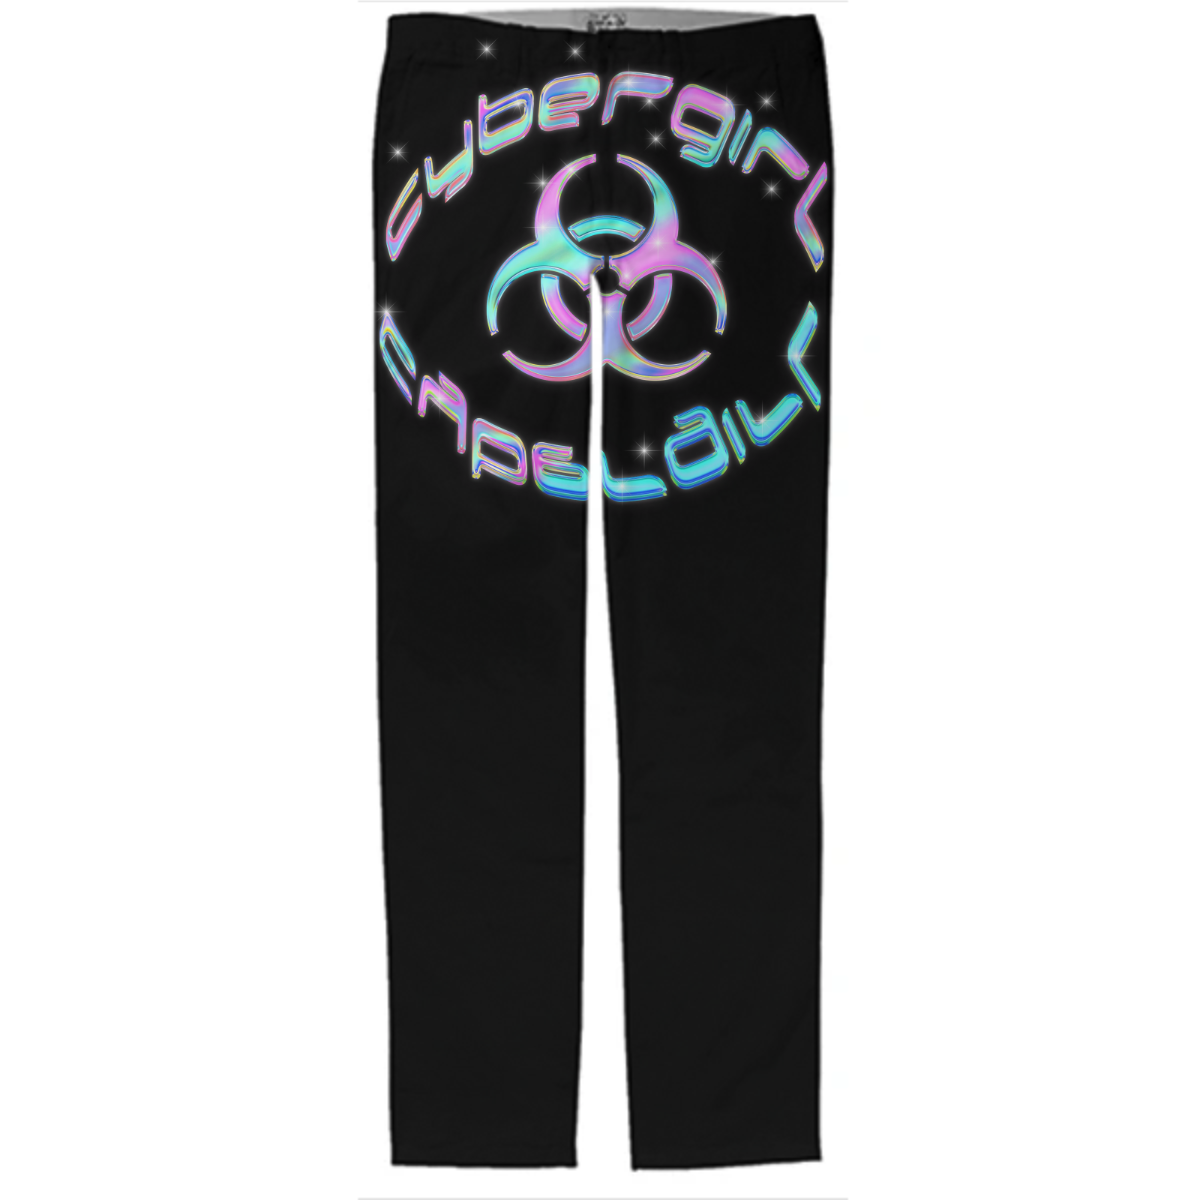 Cyber Girl Pant